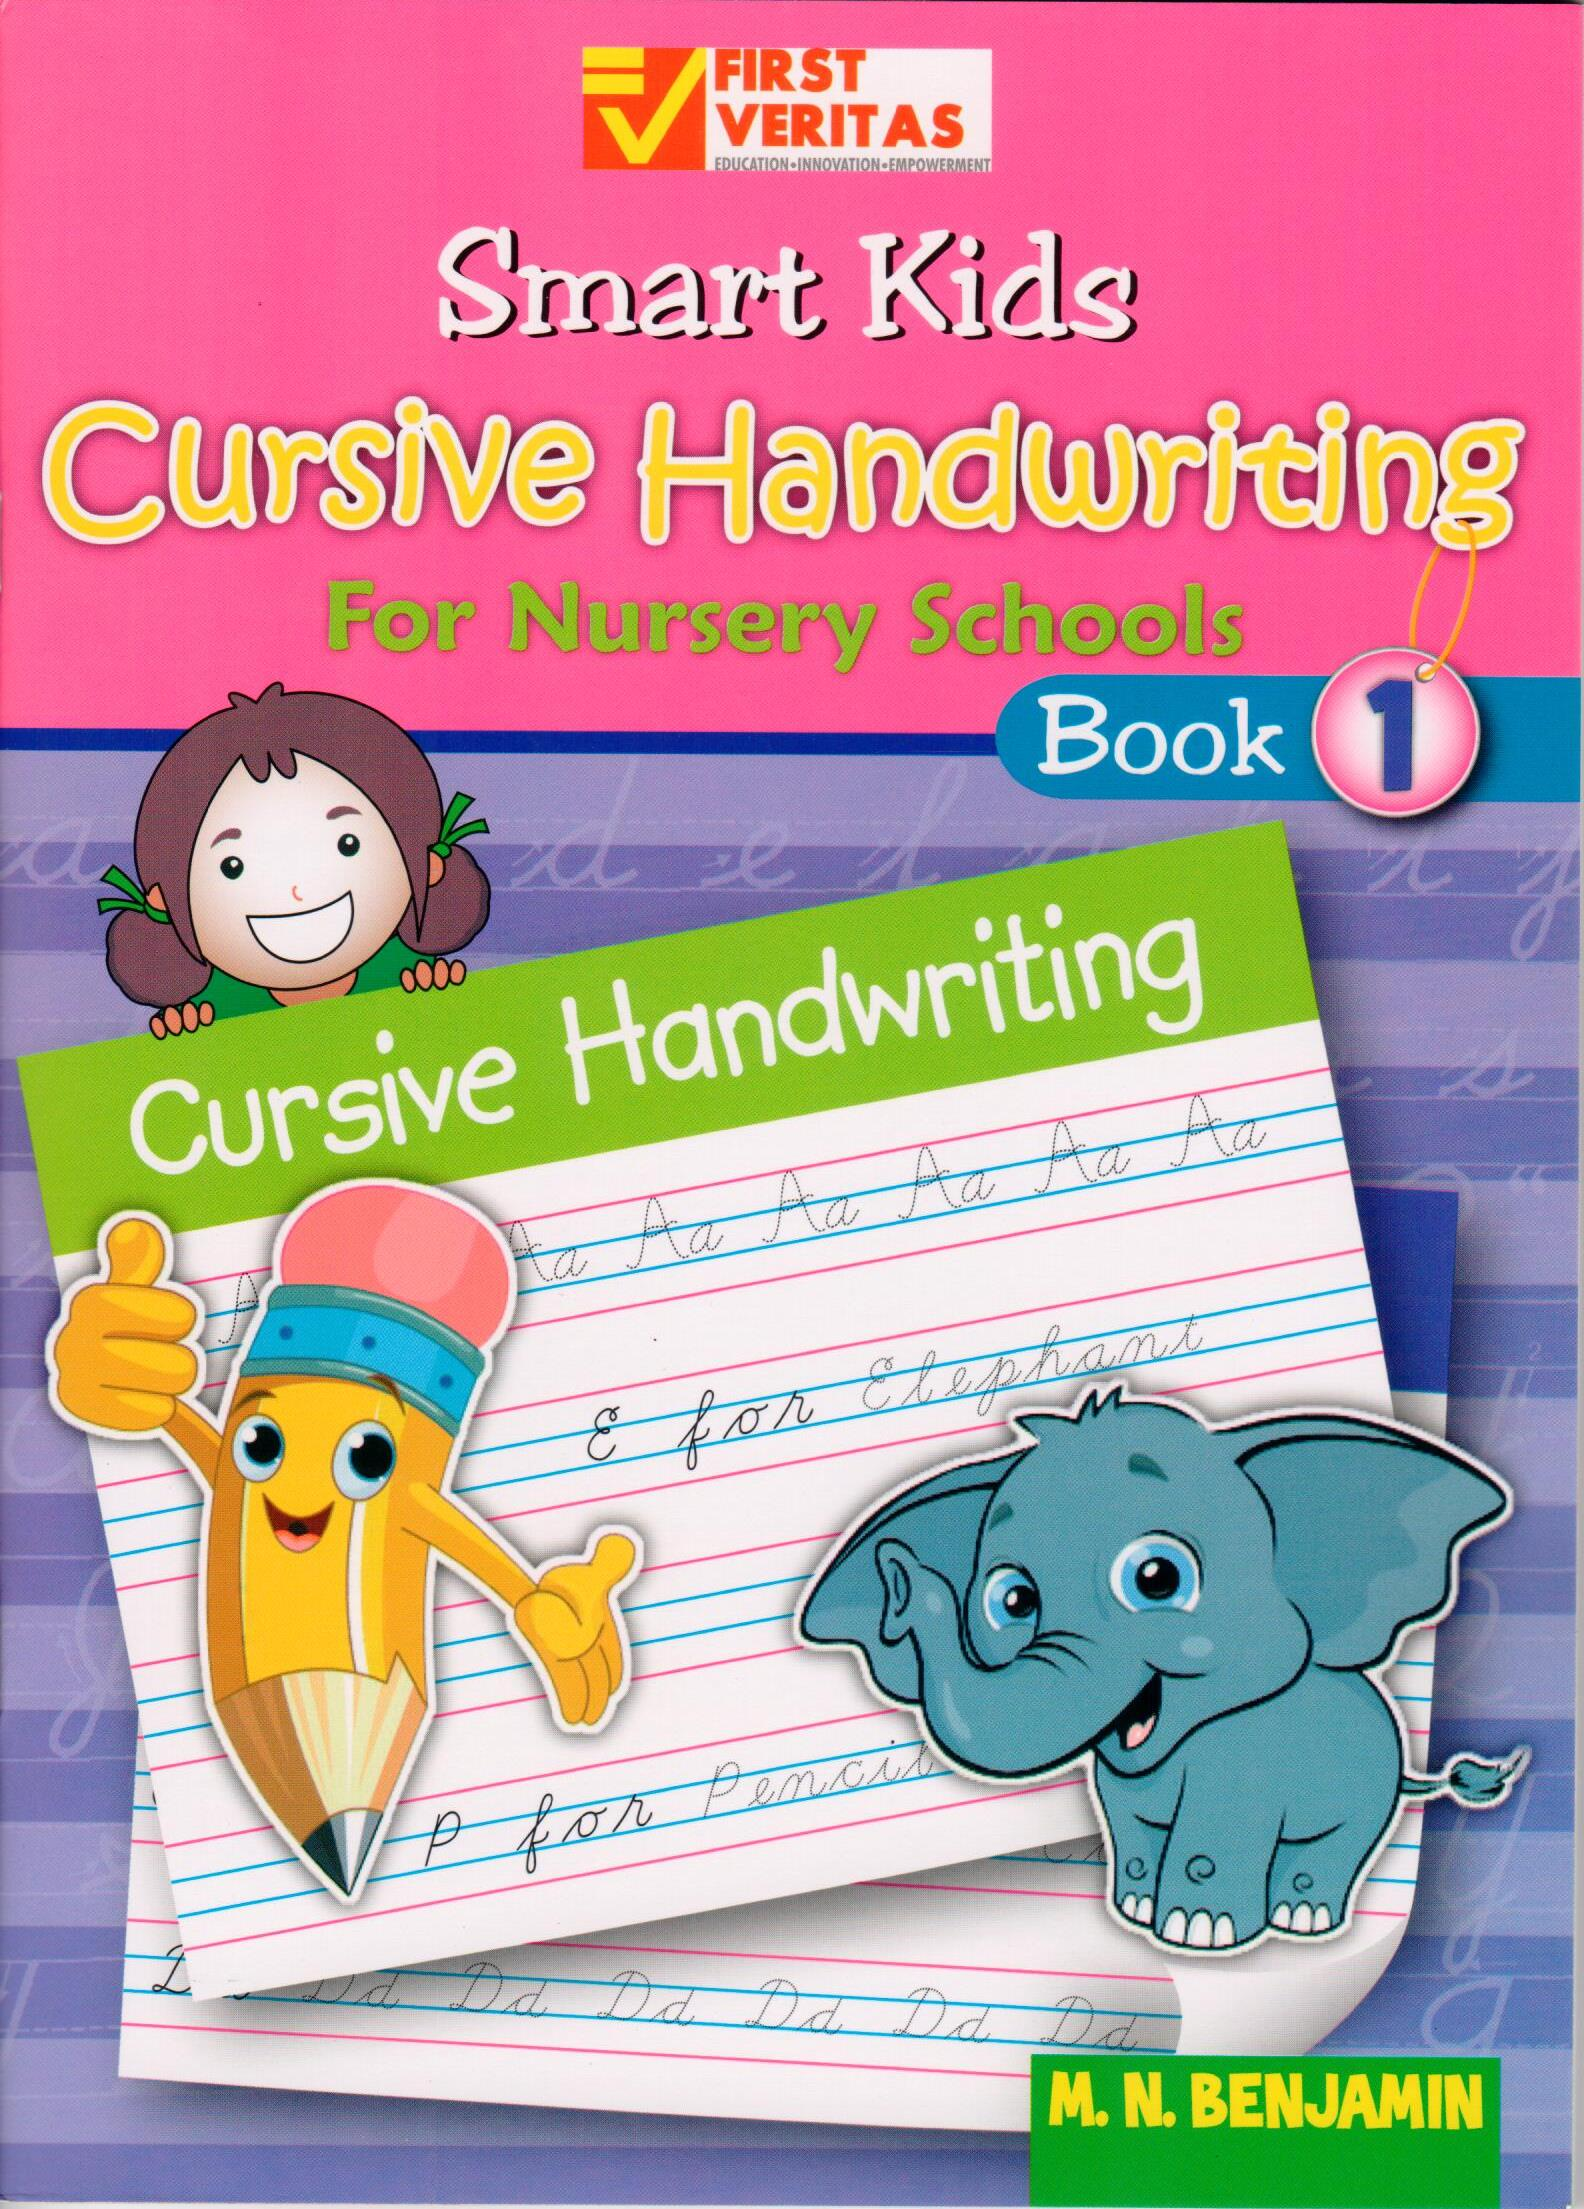 Smart kids cursive handwriting for nursery school 1 Calligraphy books free